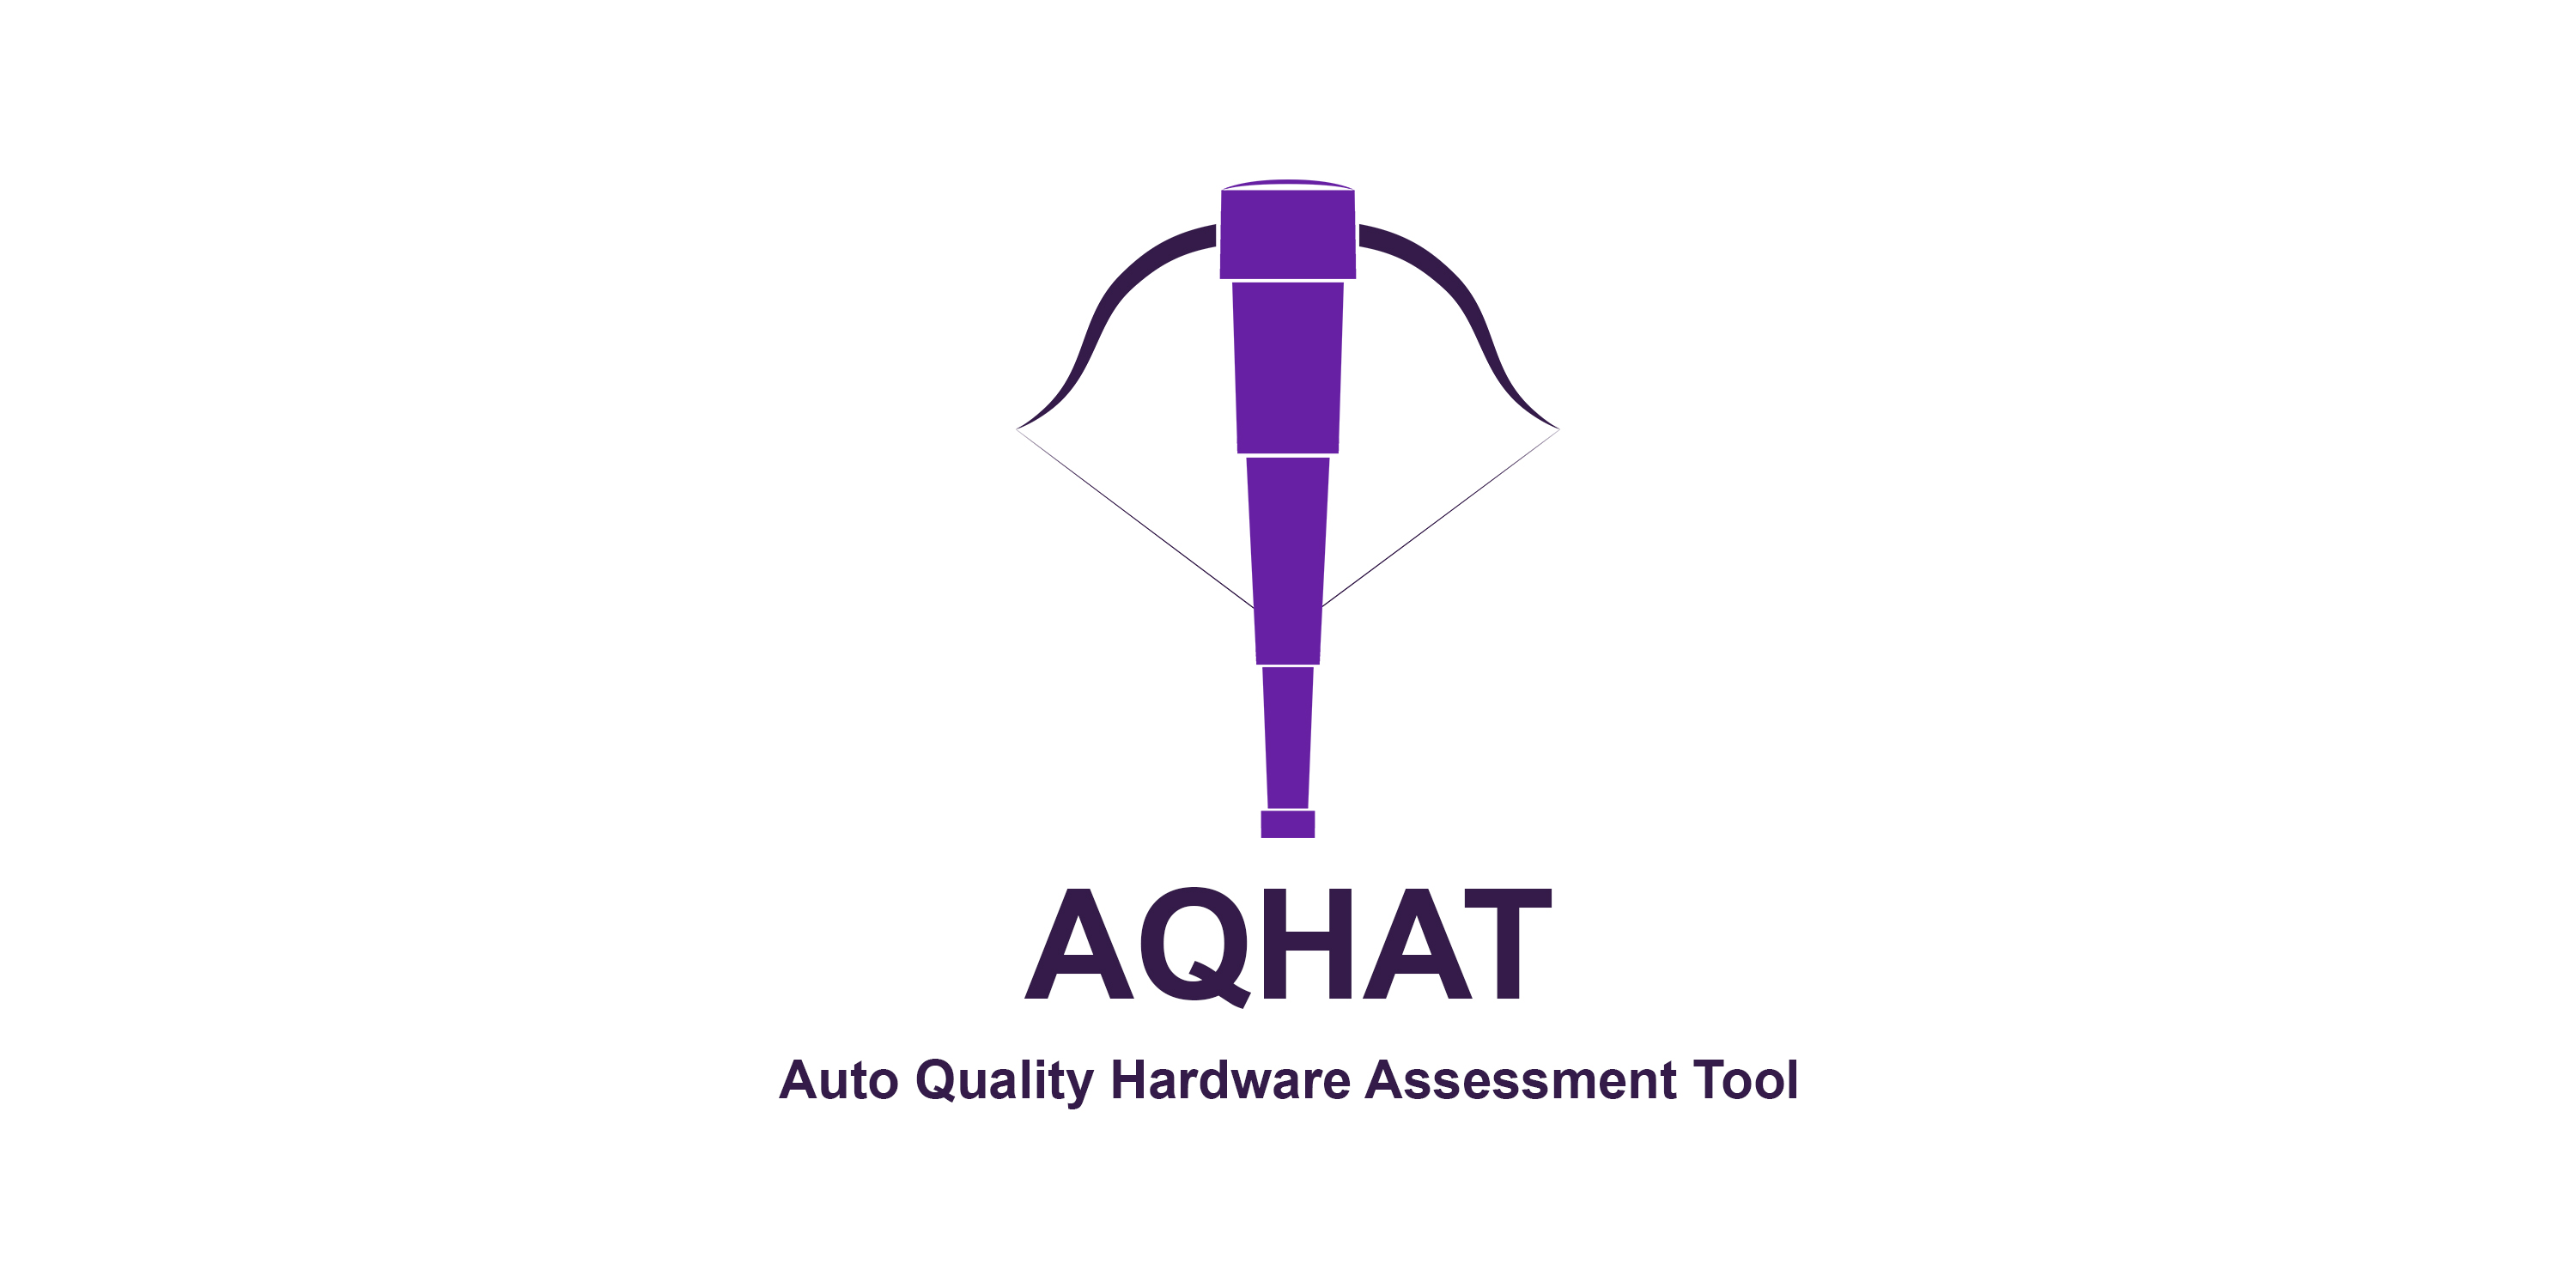 Auto Quality Hardware Assessment Tool - AQHAT